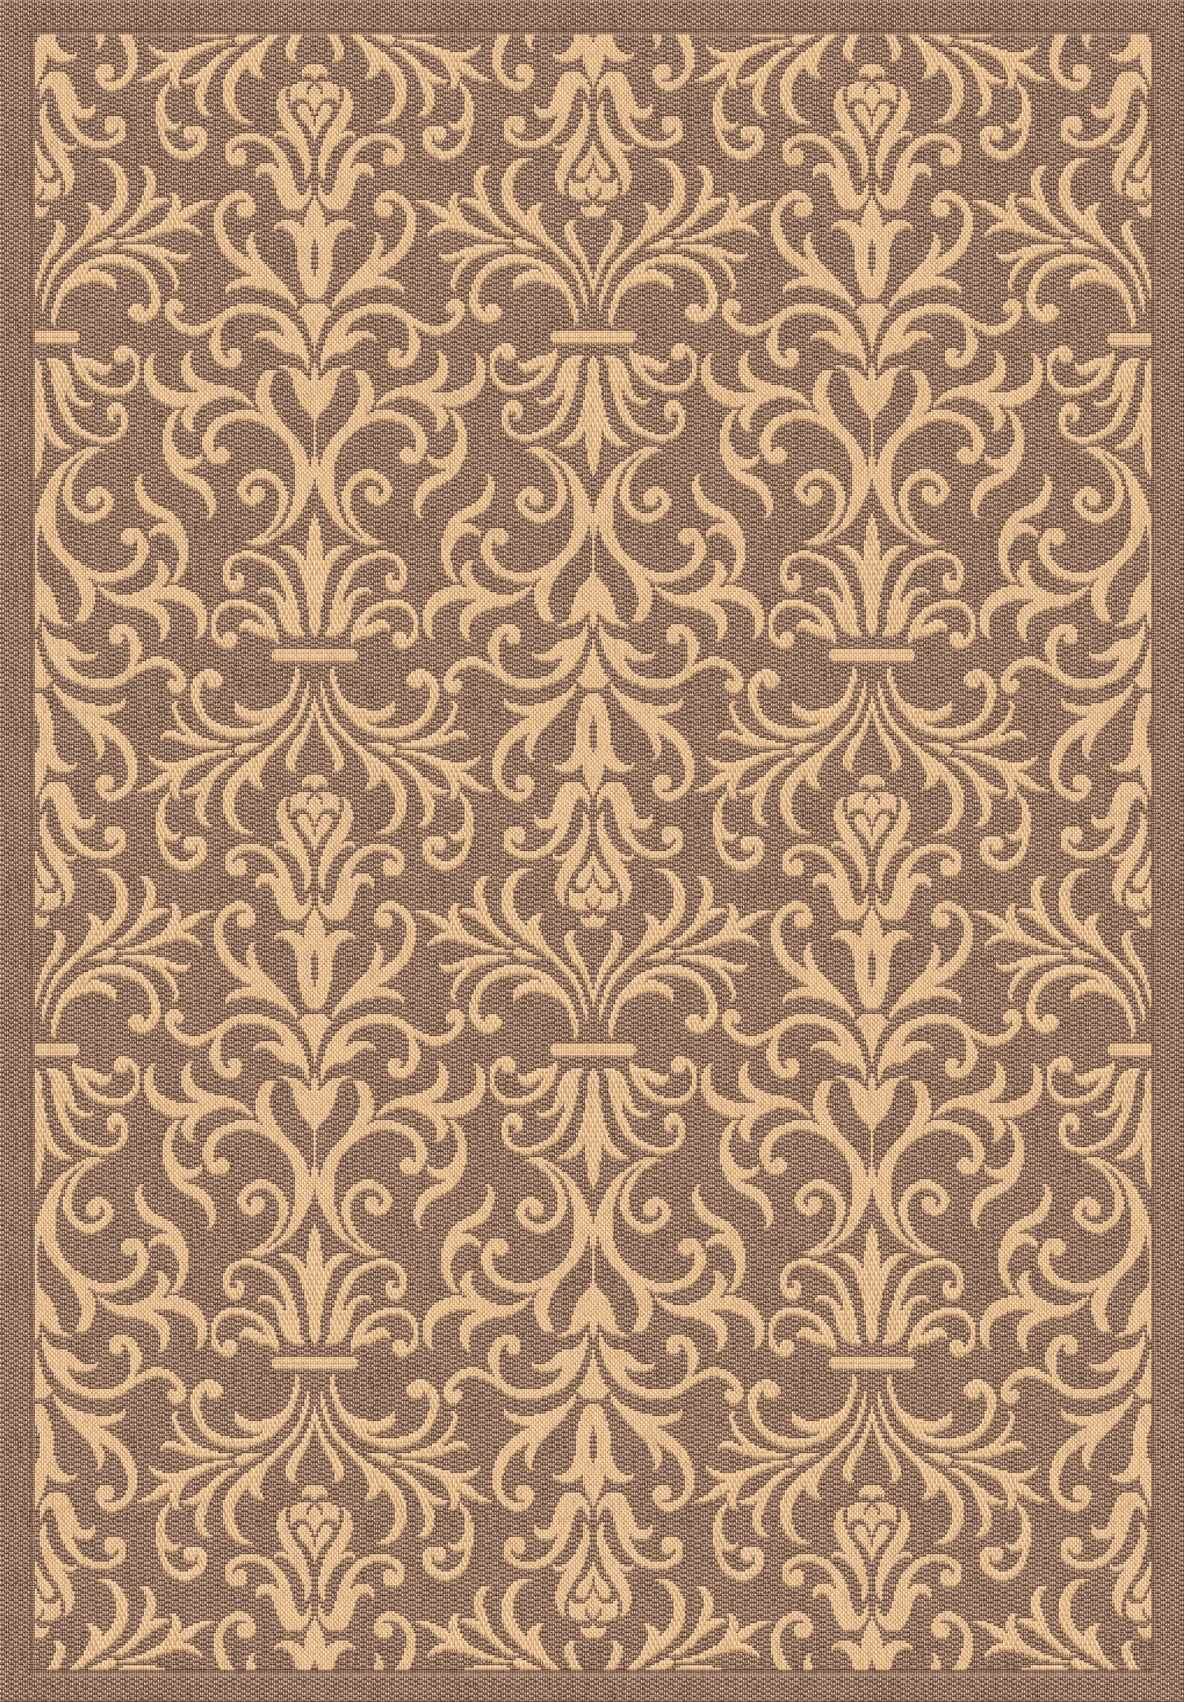 Dynamic Rugs Piazza Medallion/damask Brown 2742 Area Rug